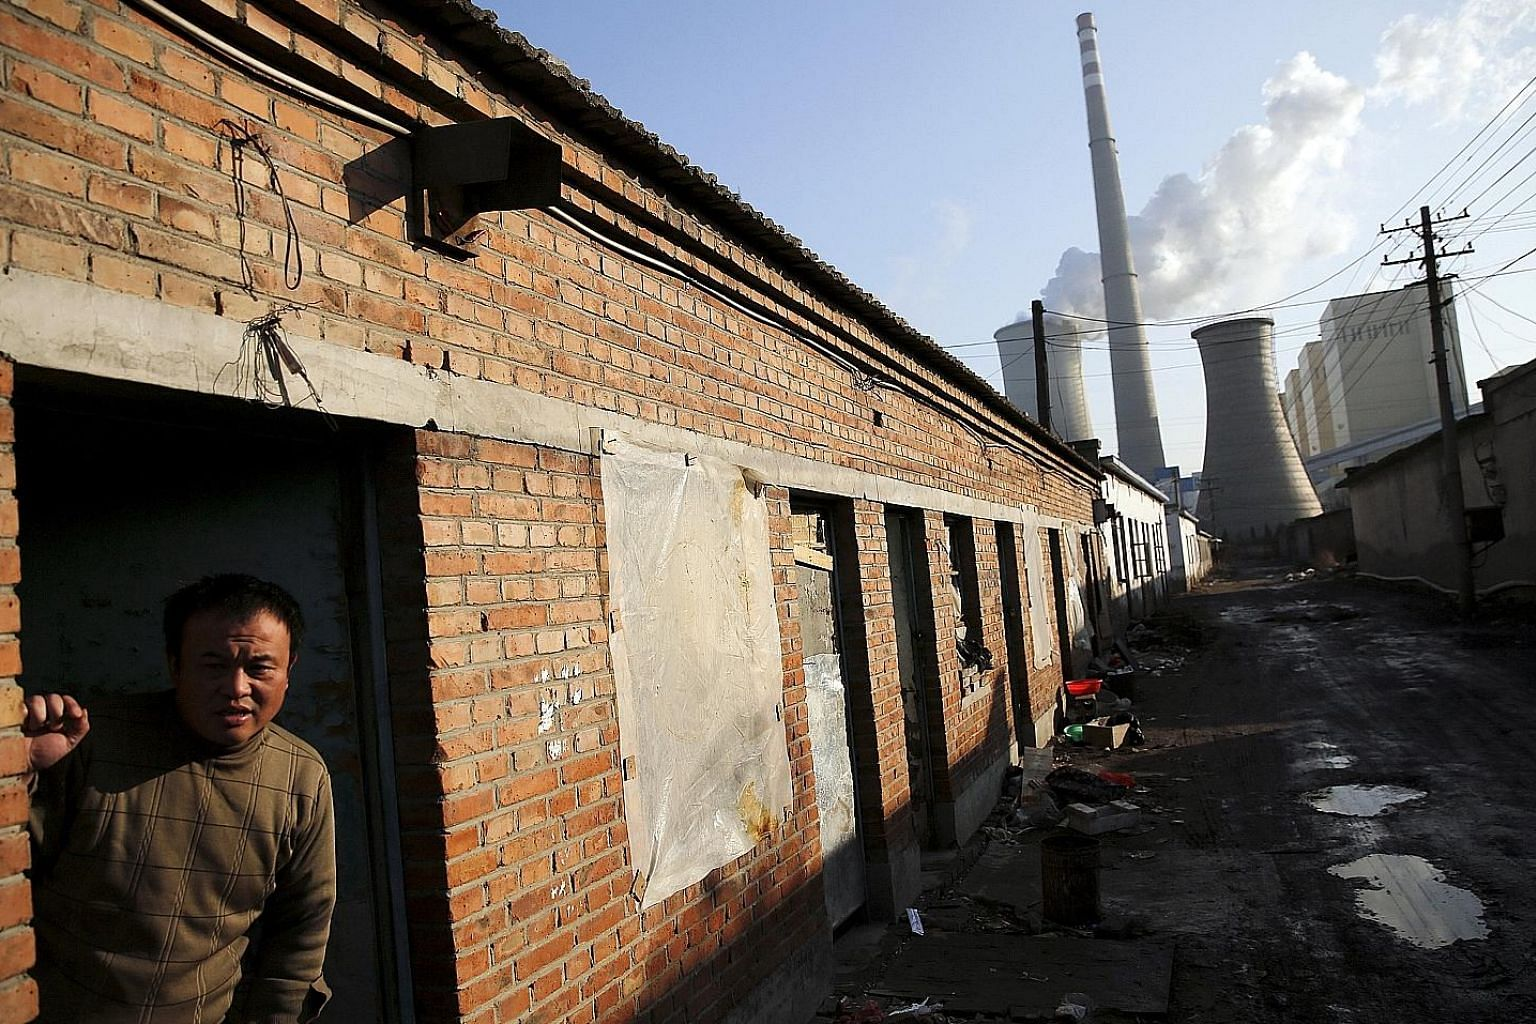 A migrant worker at his accommodation in an area next to a coal-fired power plant in Beijing. Private capital is keen to support the Chinese government's policy priorities to shift economic growth towards a less resource-intensive, more consumer-cent